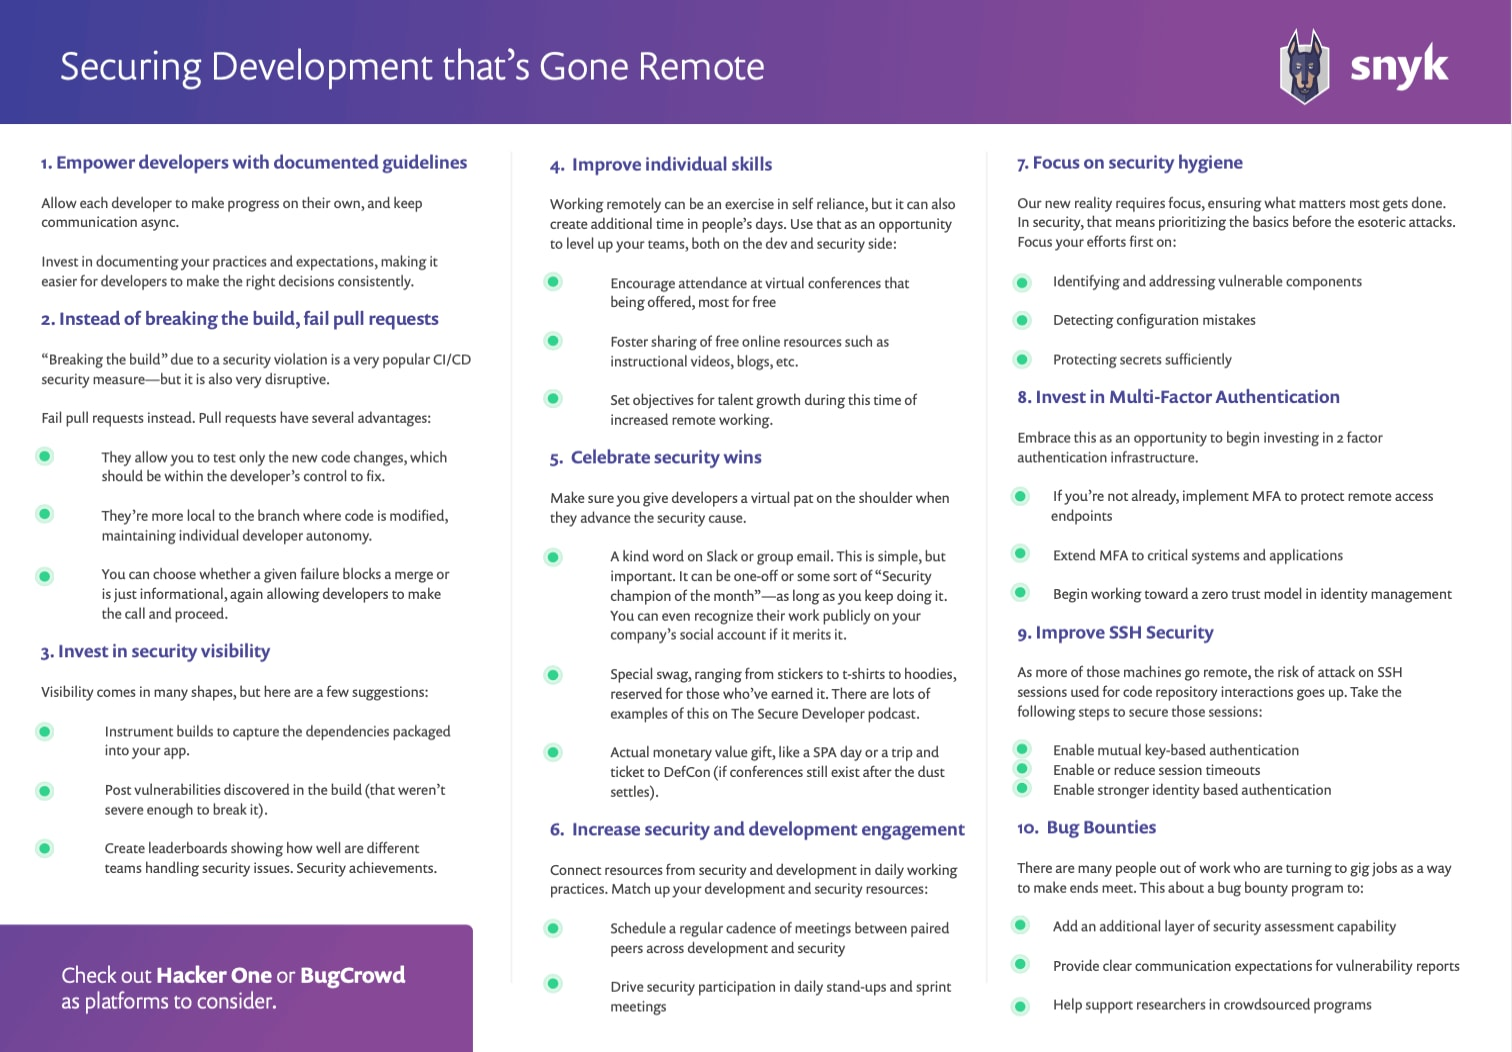 Securing Development That's Gone Remote Cheatsheet Image